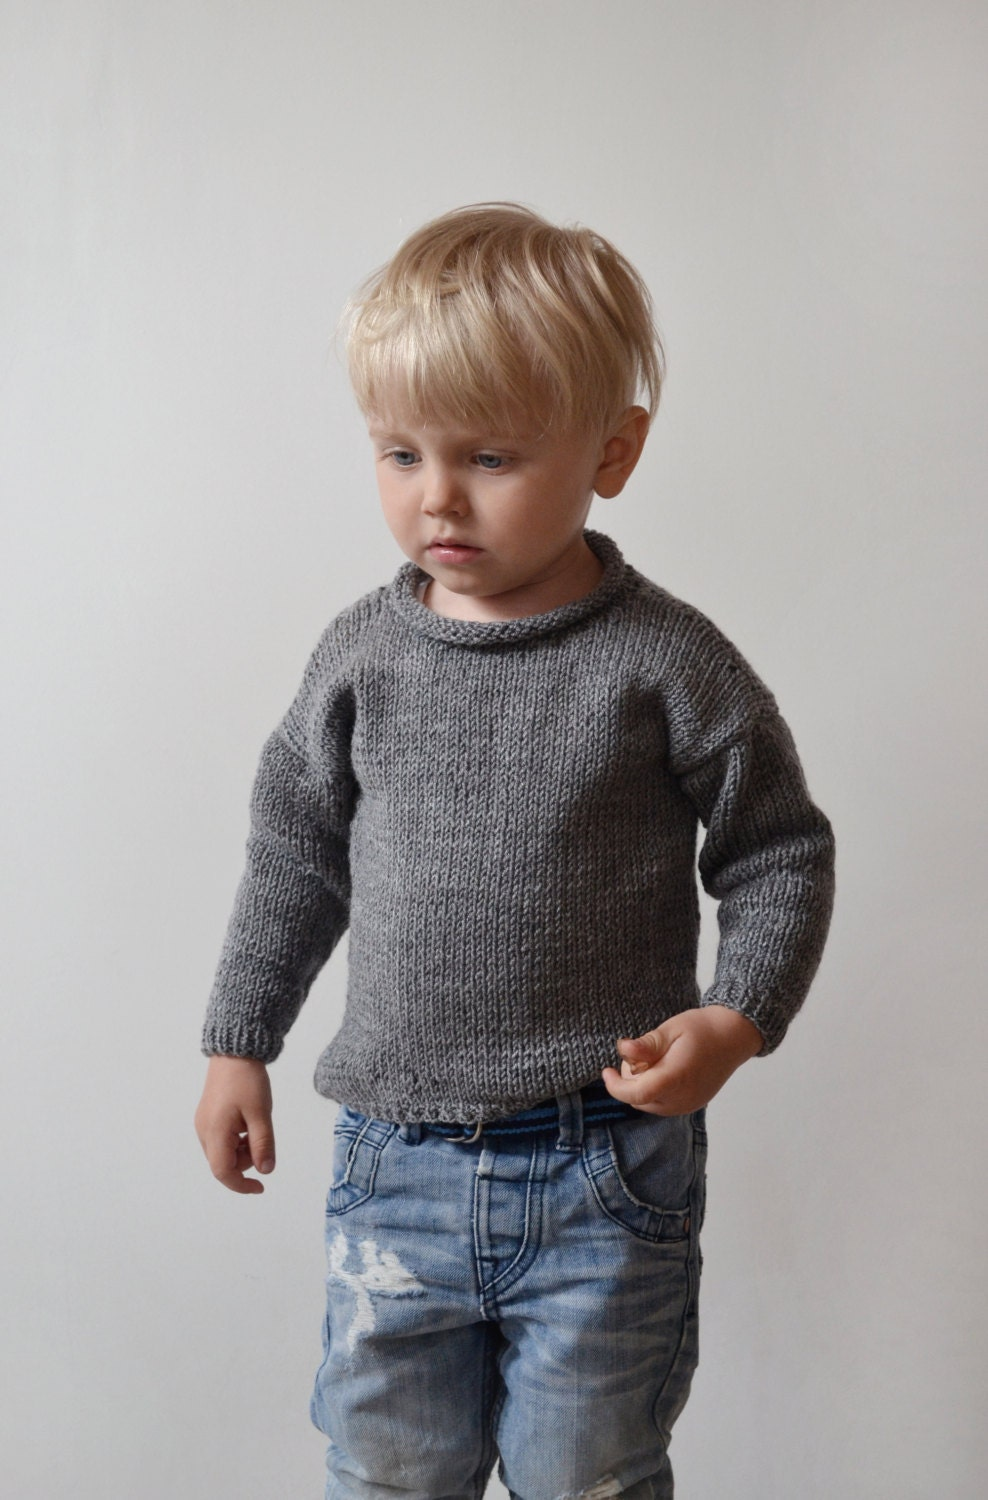 Knitting Kids Sweater : Hand knit toddler sweater hipster kids grey boy